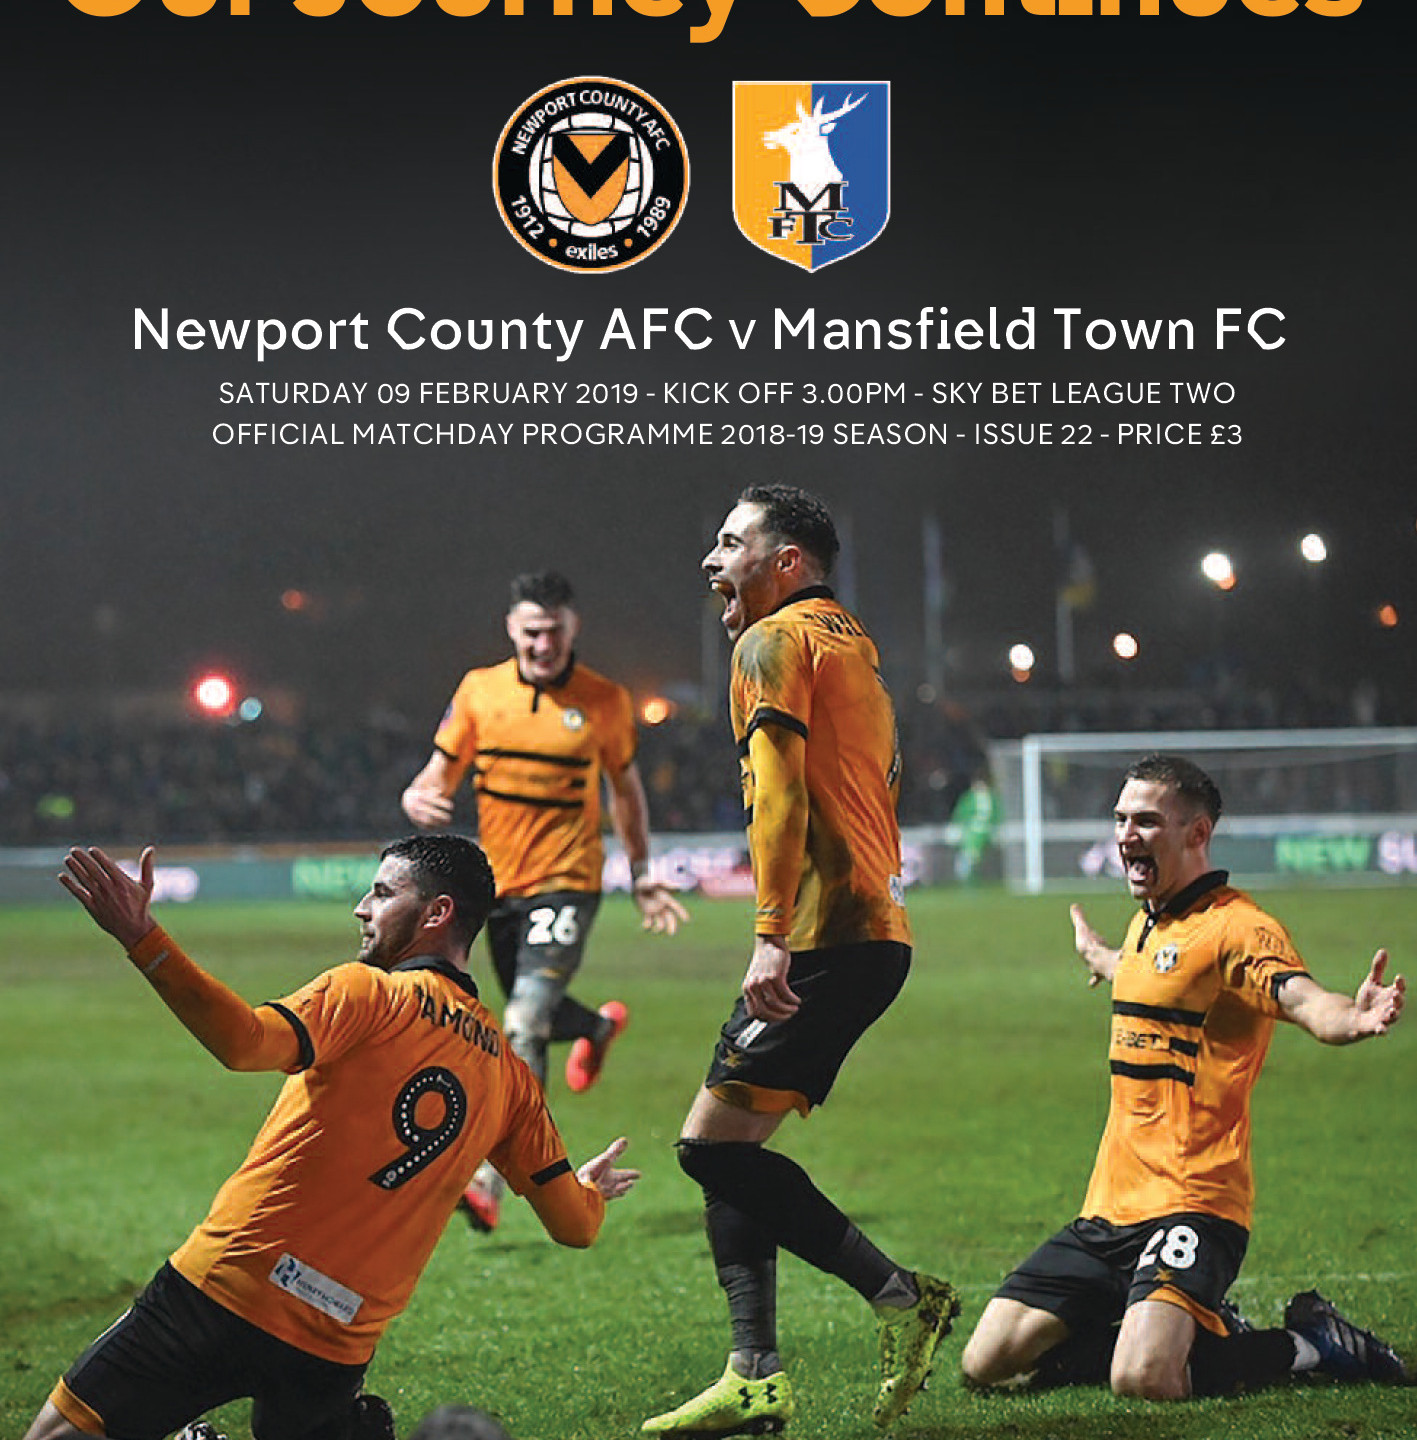 County Matchday Programme